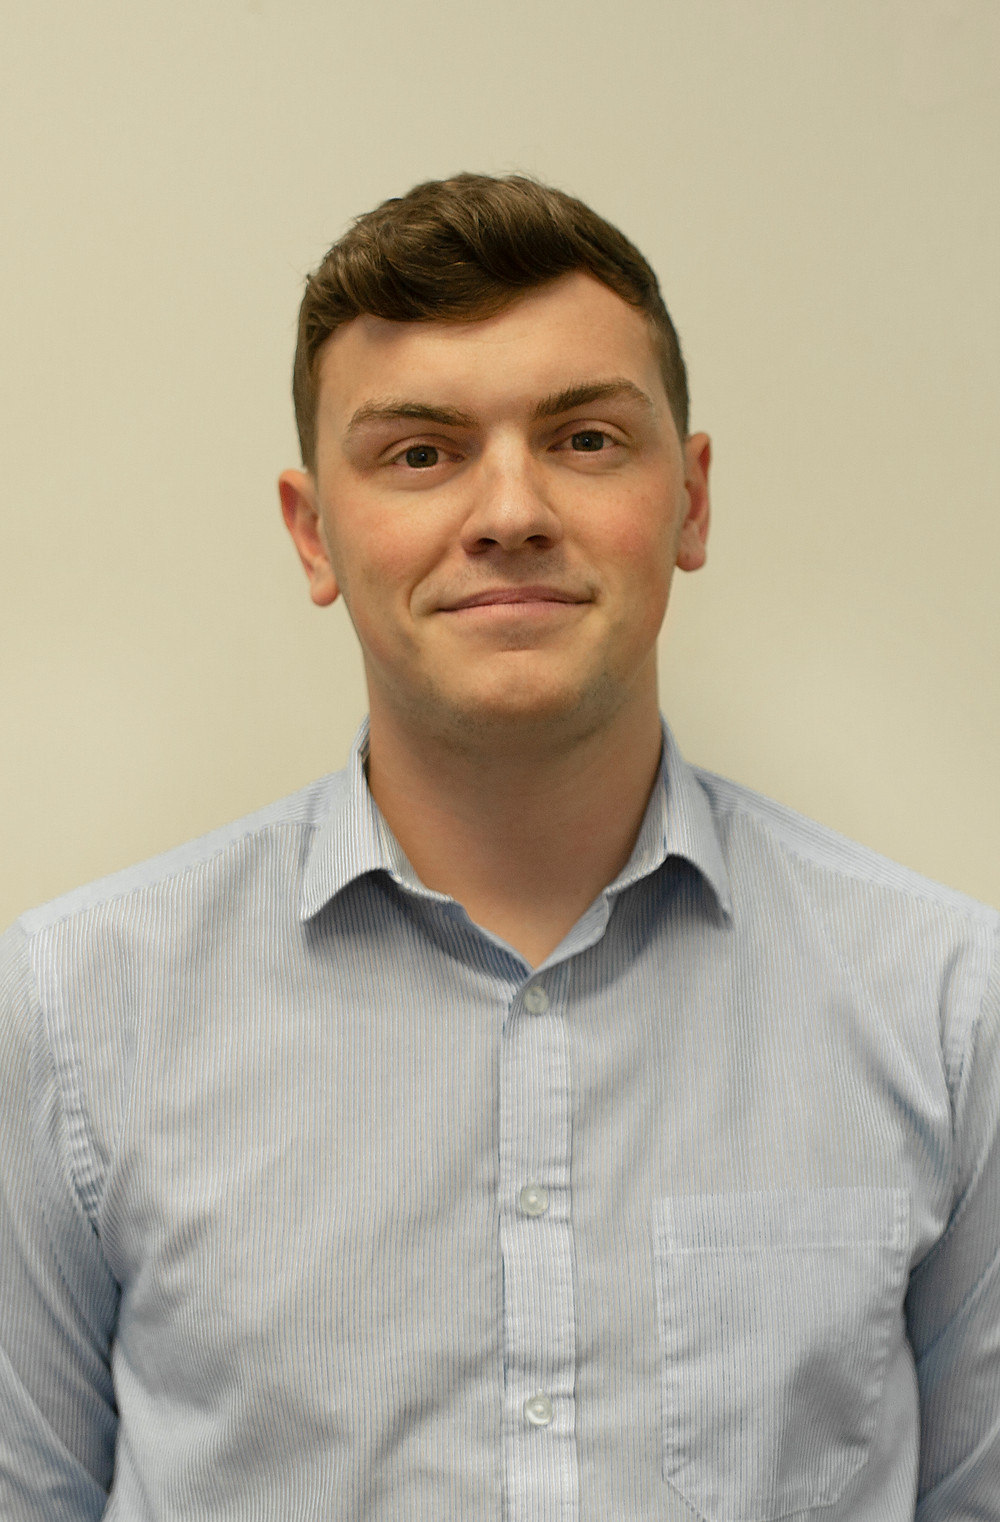 Peter Roberts - Digital Marketing Apprentice